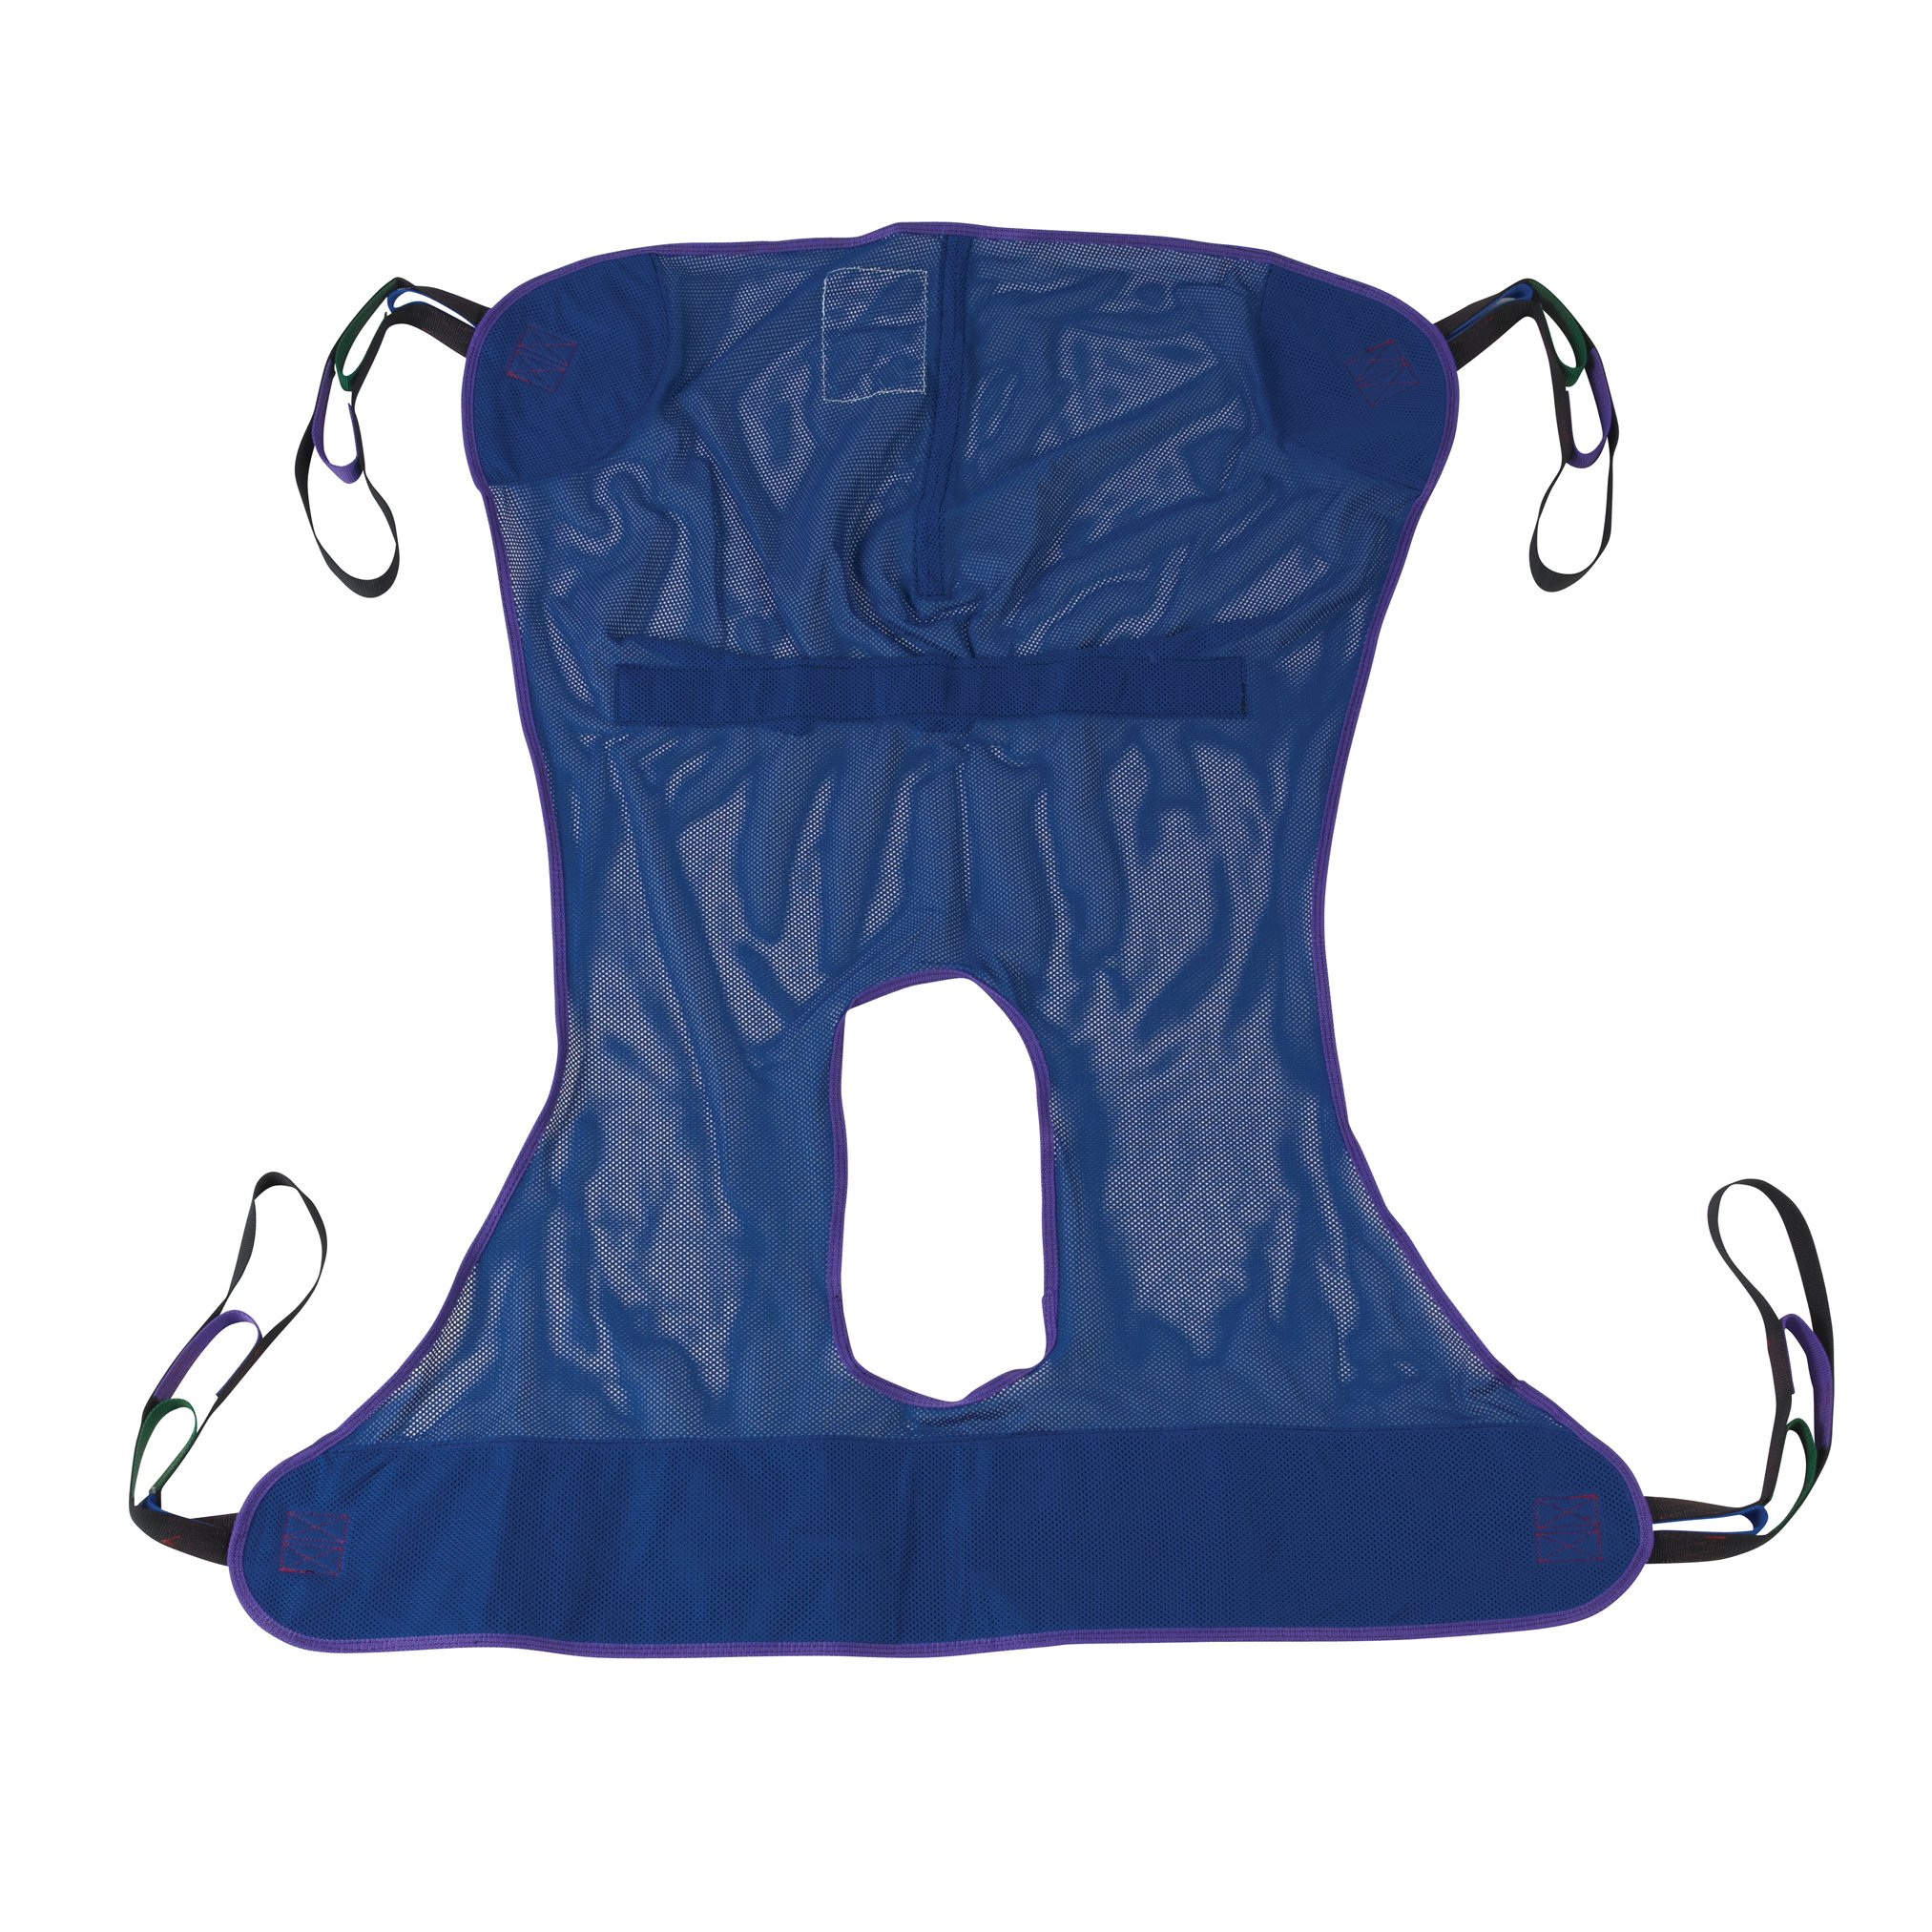 Drive Medical Full Body Patient Lift Sling, Mesh with Commode Cutout, Medium by Drive Medical